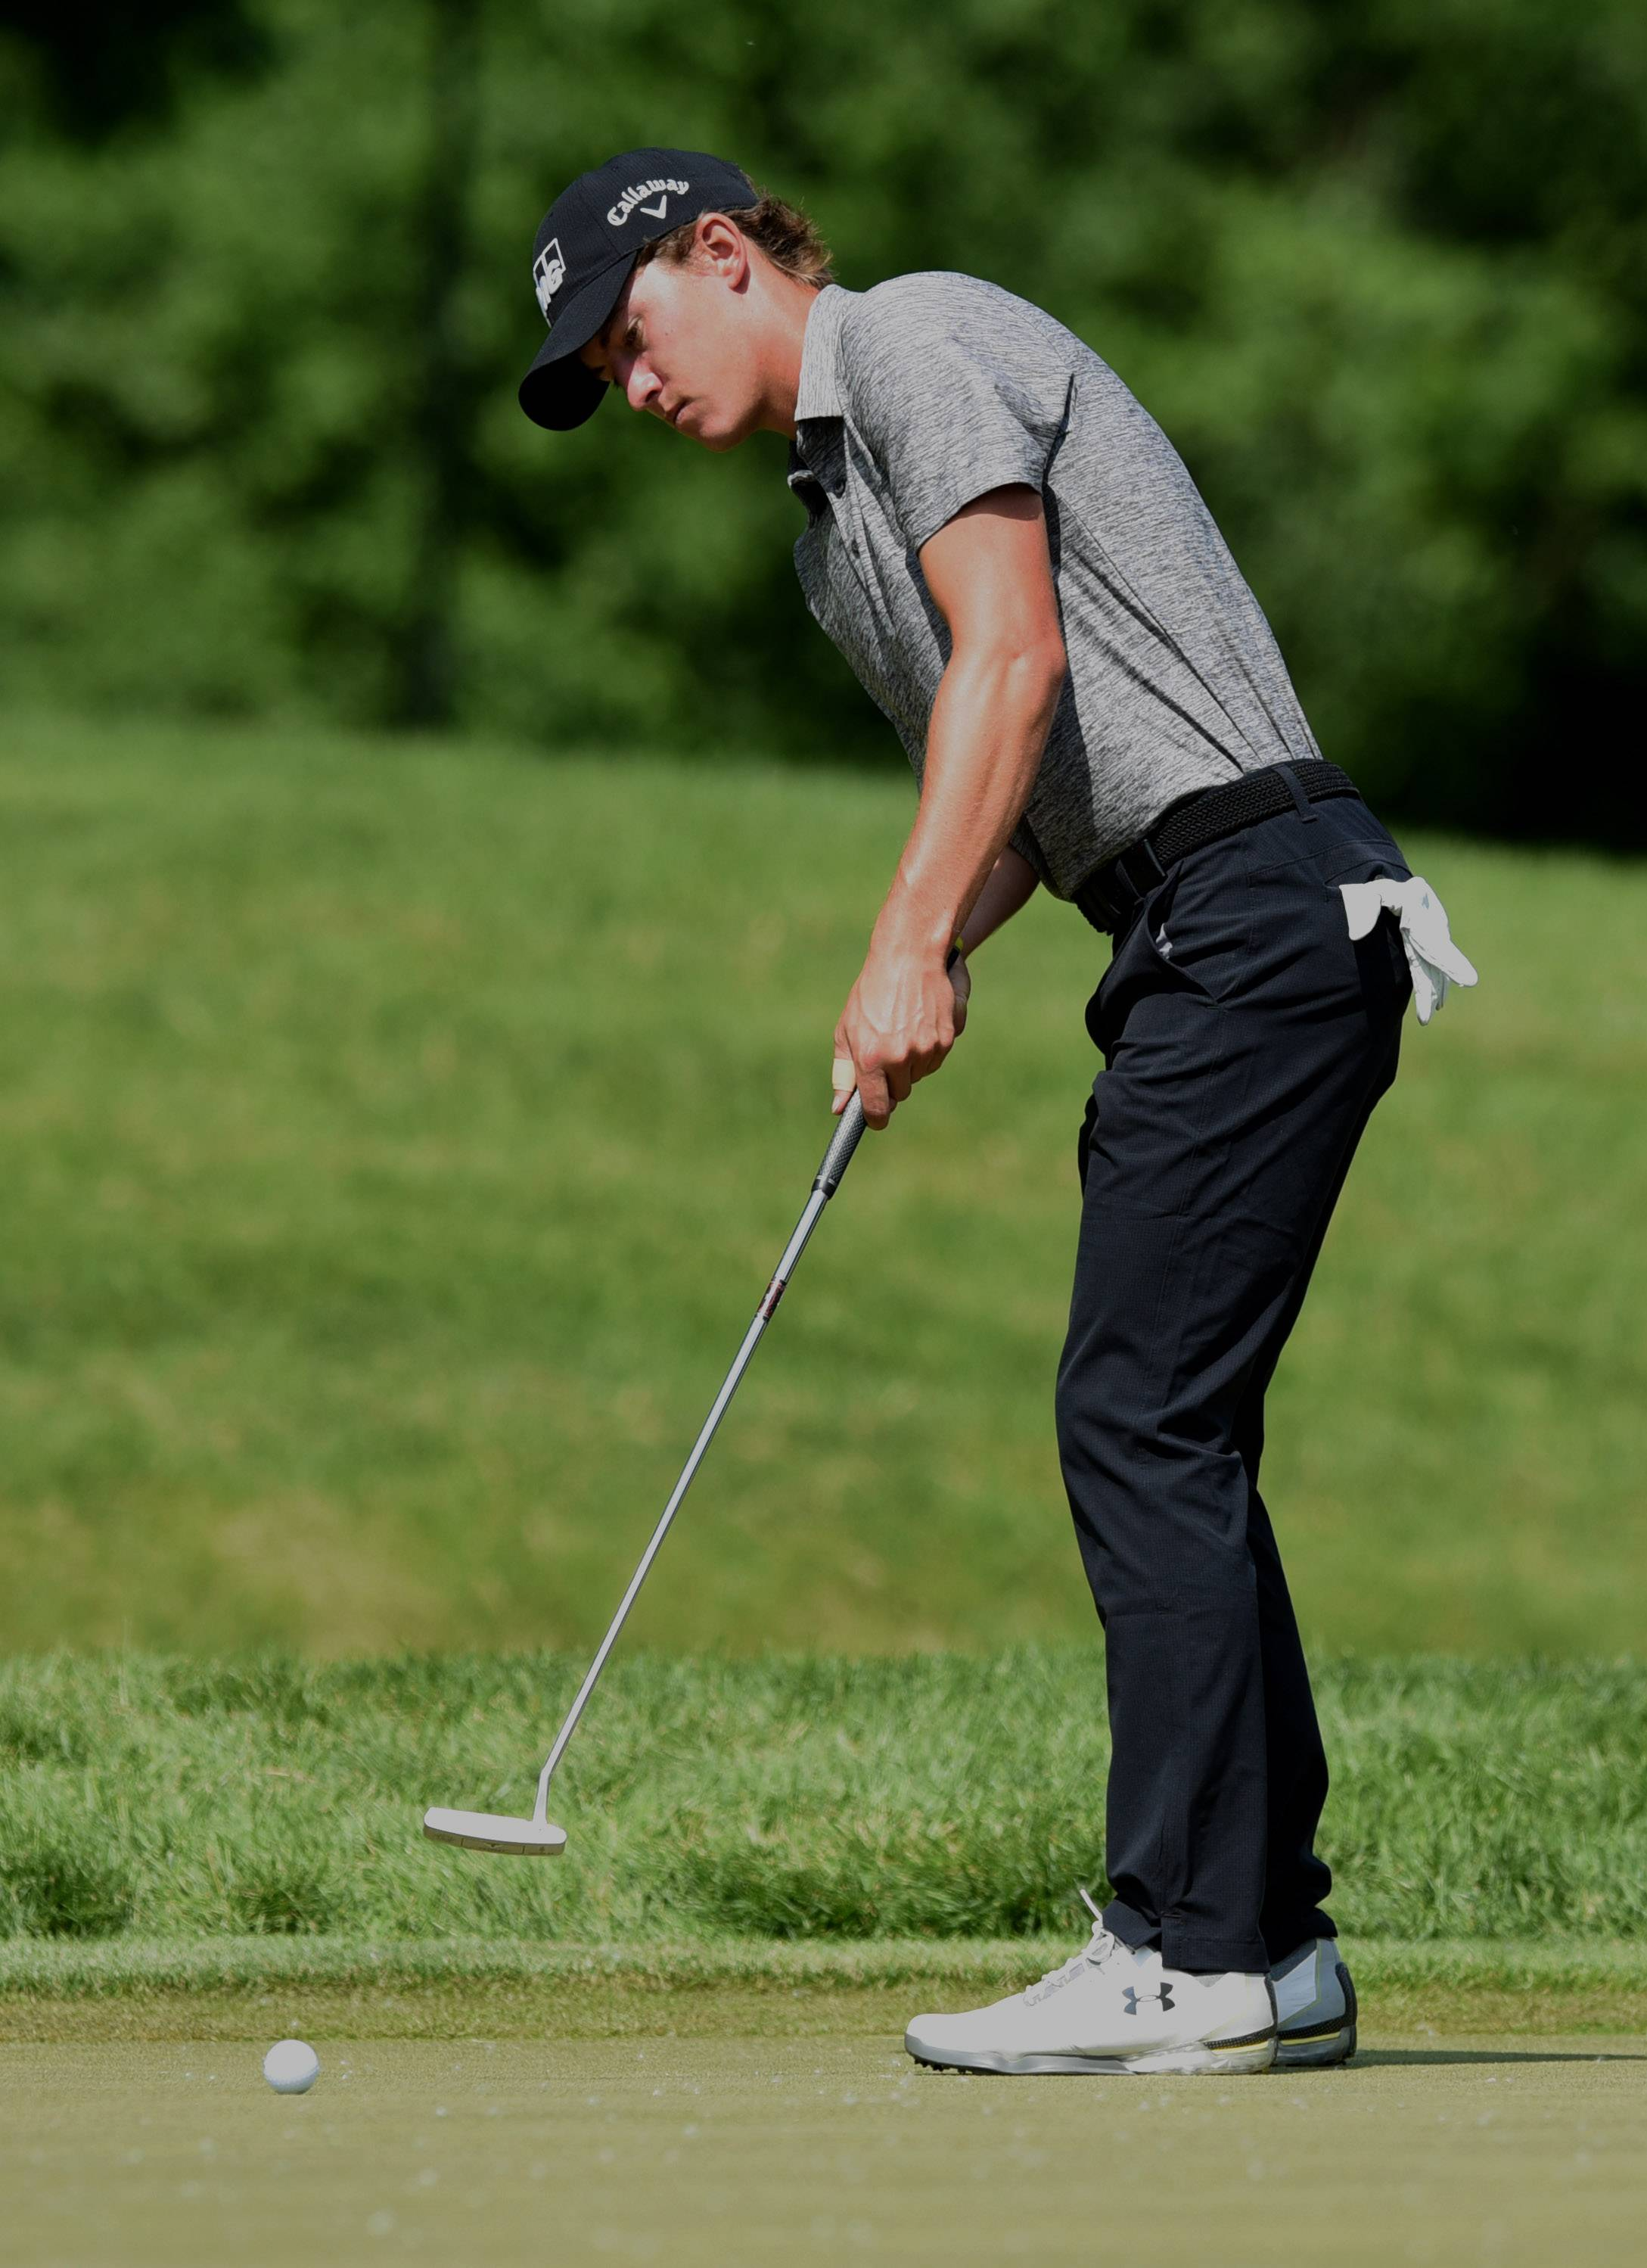 Rozner: Maverick McNealy making his own way in pro golf